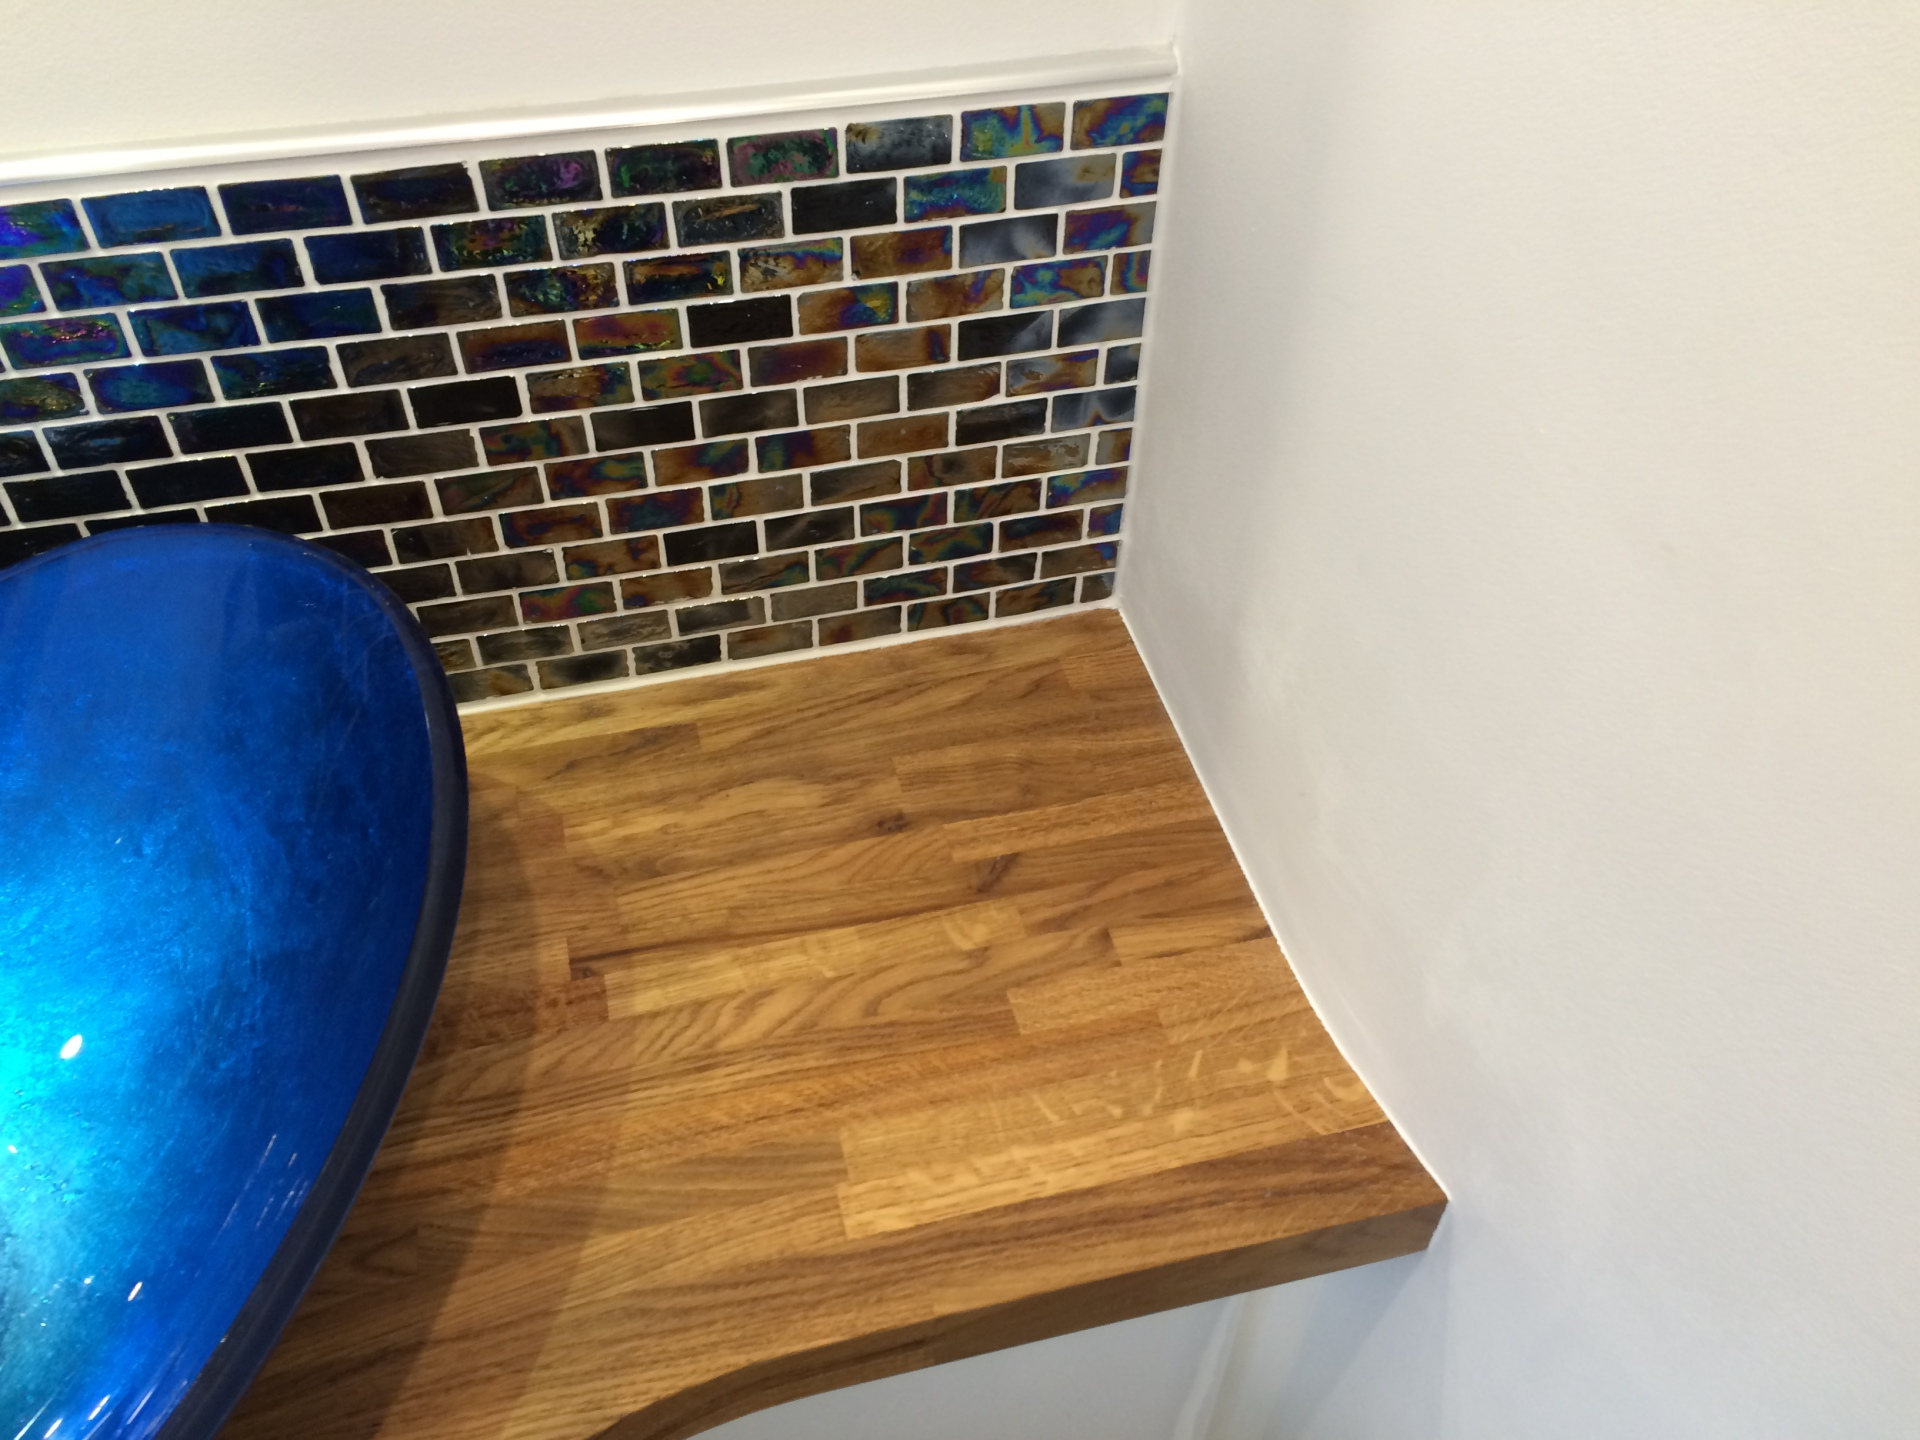 Glass bathroom sink with glass mosaic tiles